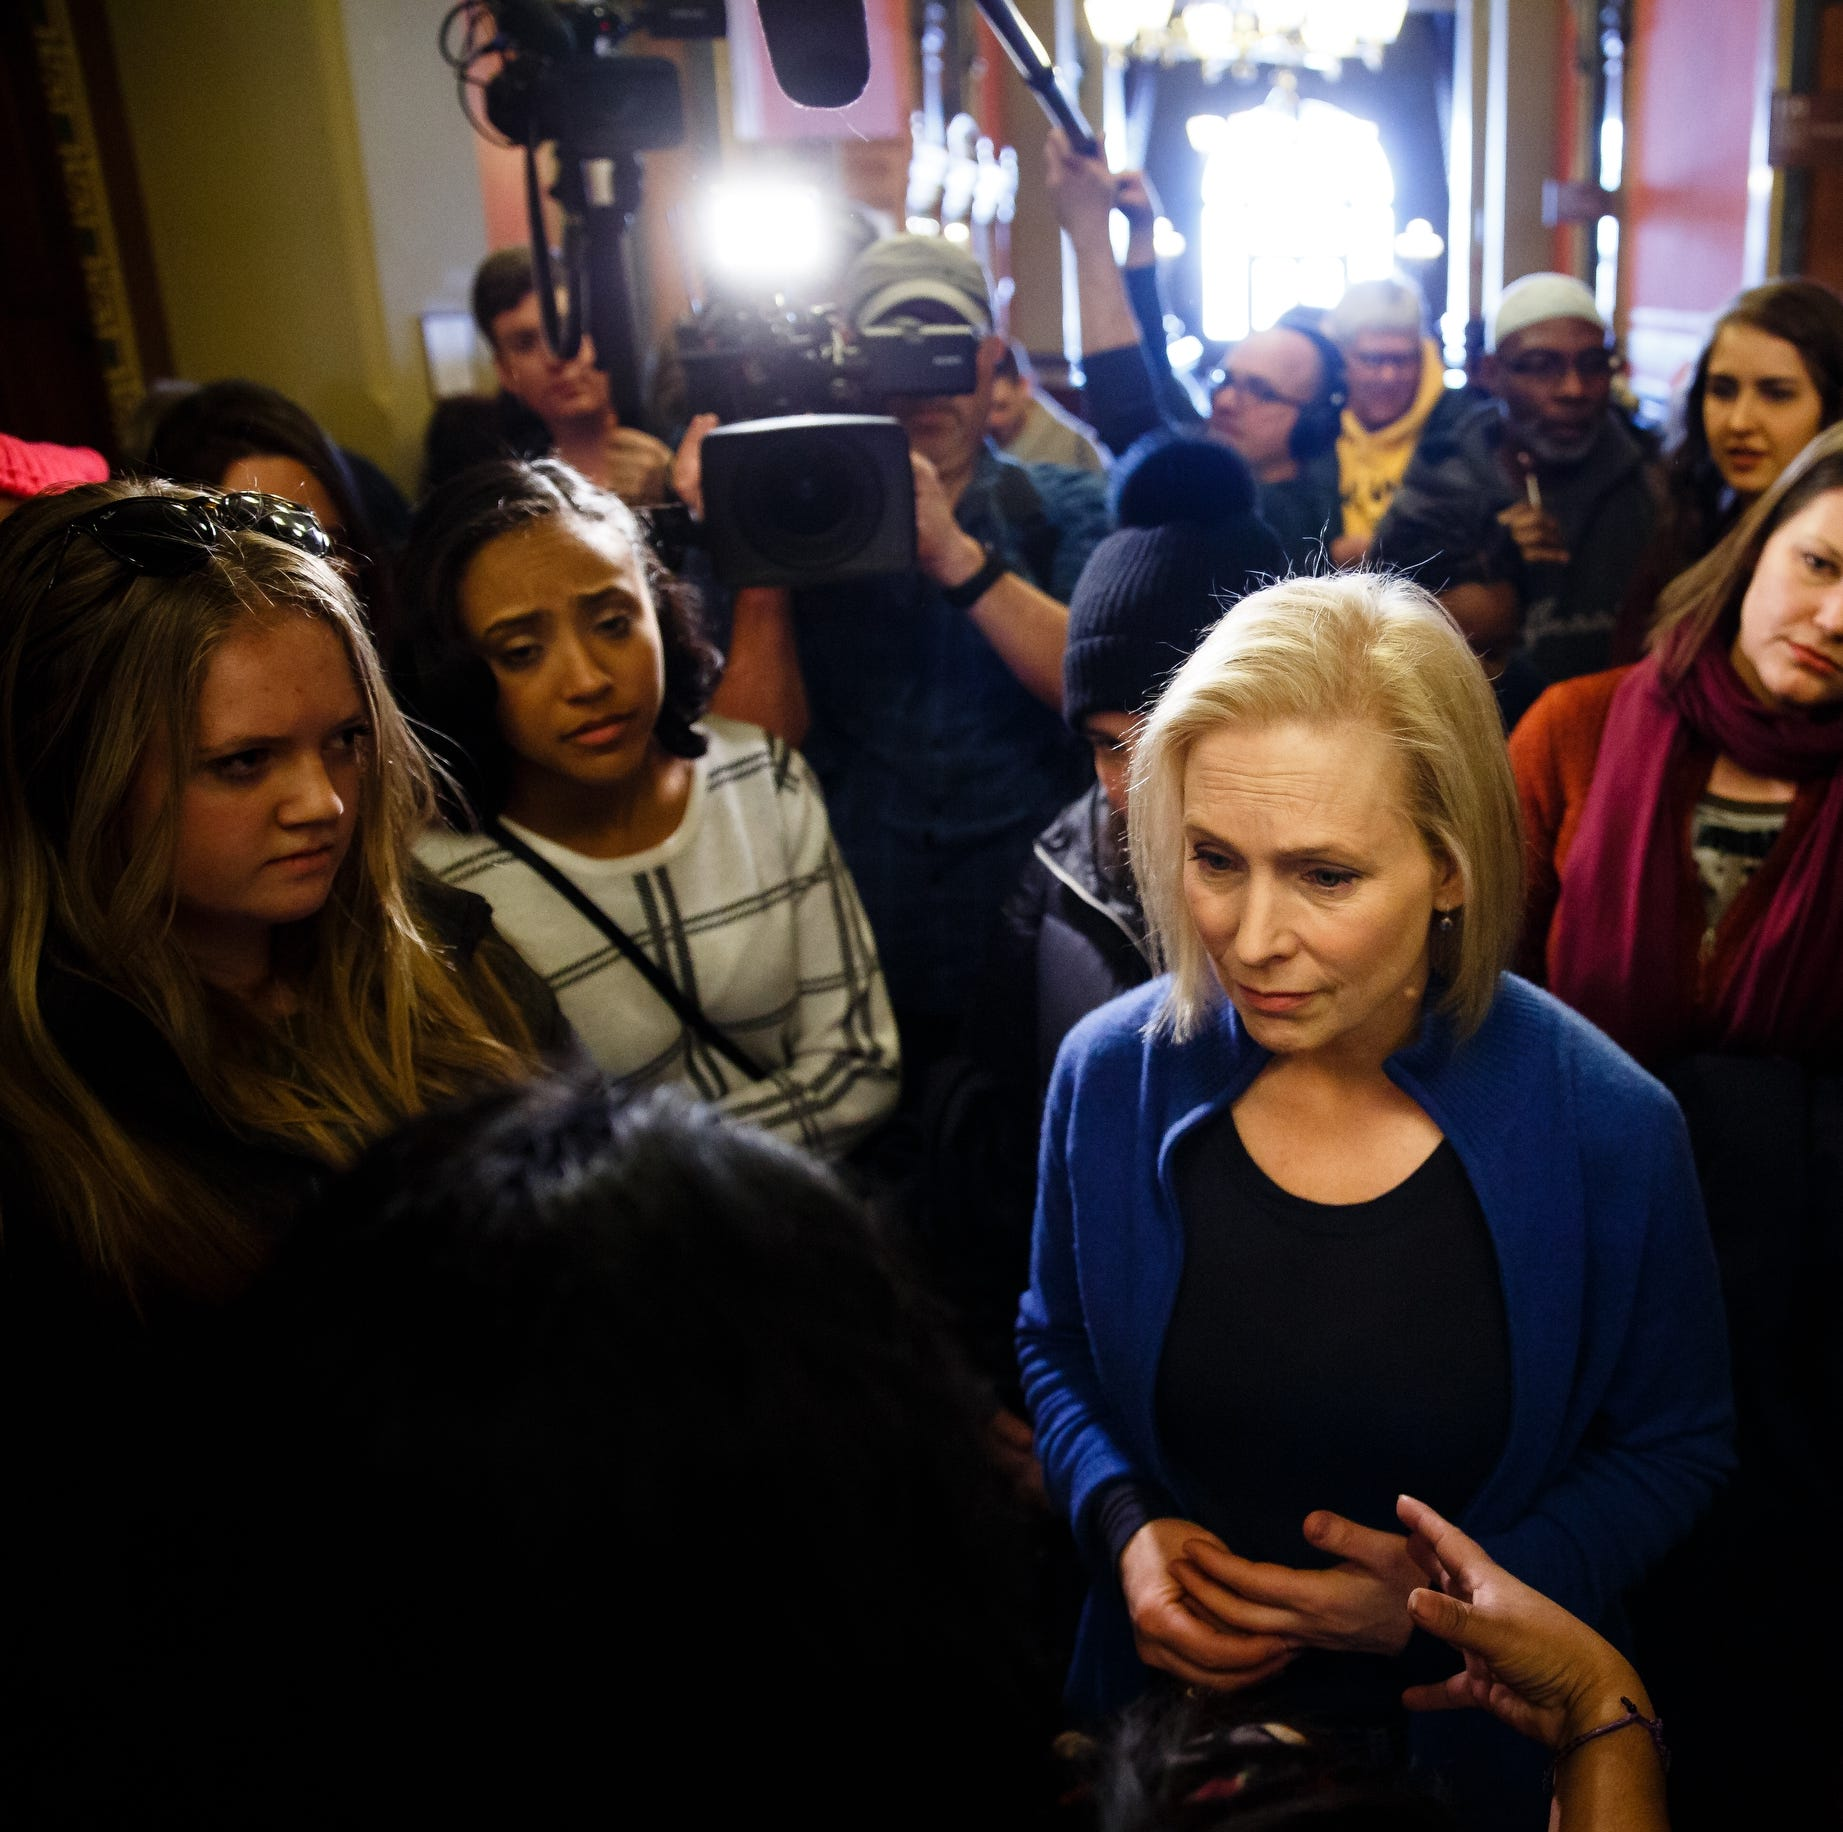 Women's March: Gillibrand condemns Trump's choice to 'divide' and urges gender equality